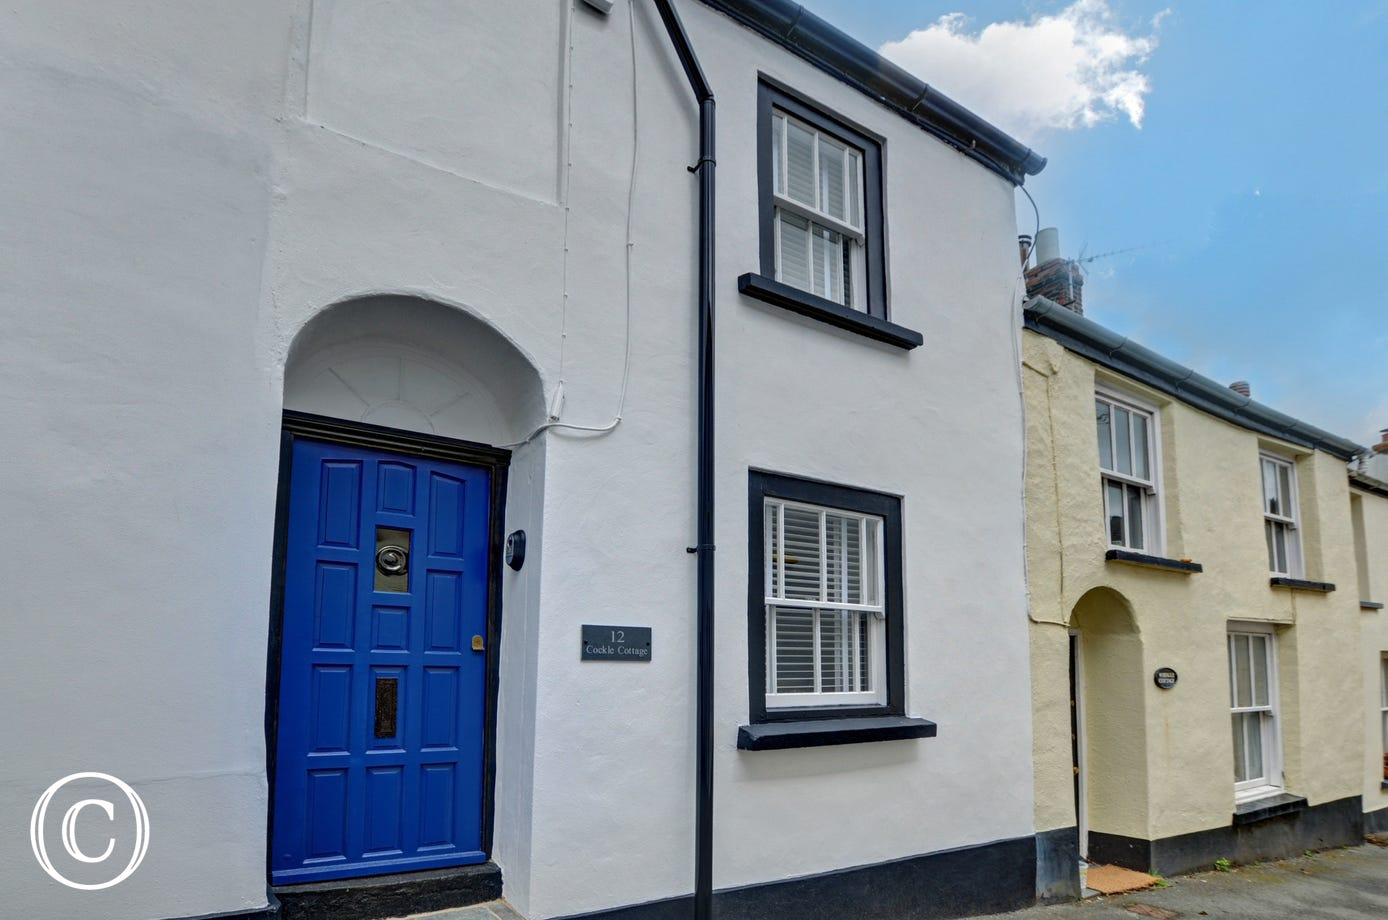 The cottage is less than a hundred yards from the quay and waterfront shops, pubs and restaurants